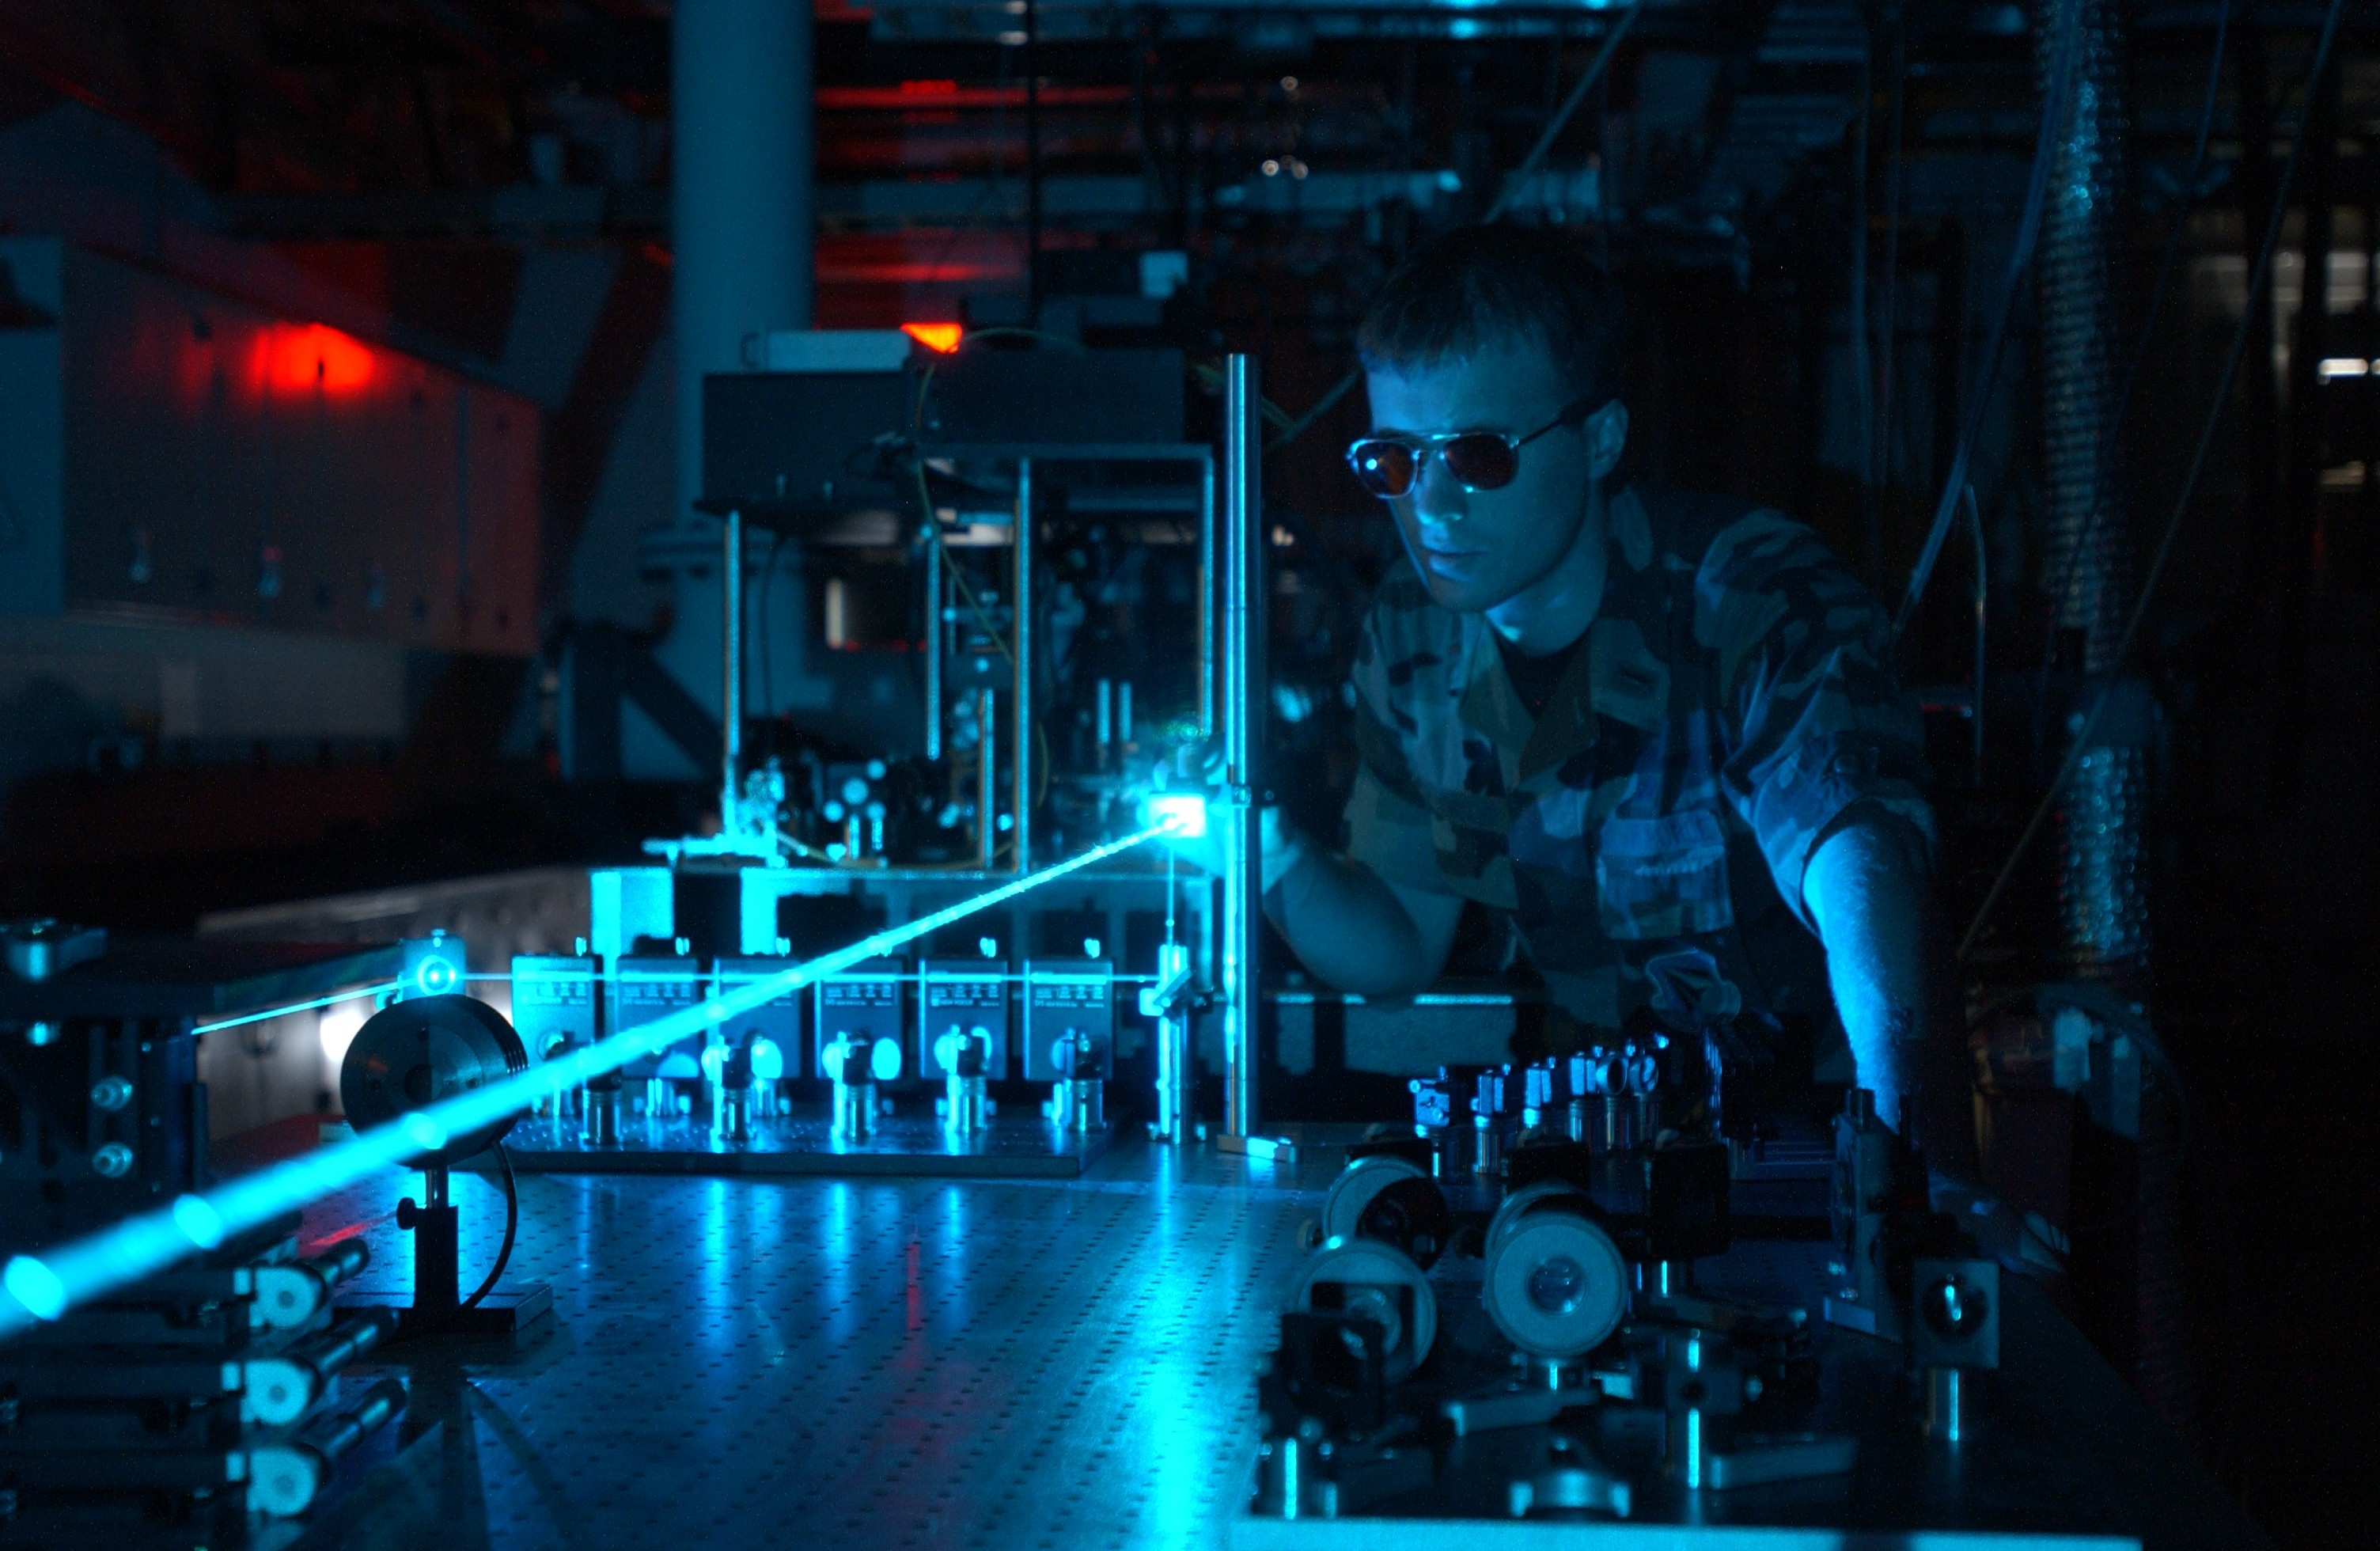 http://upload.wikimedia.org/wikipedia/commons/a/a0/Military_laser_experiment.jpg